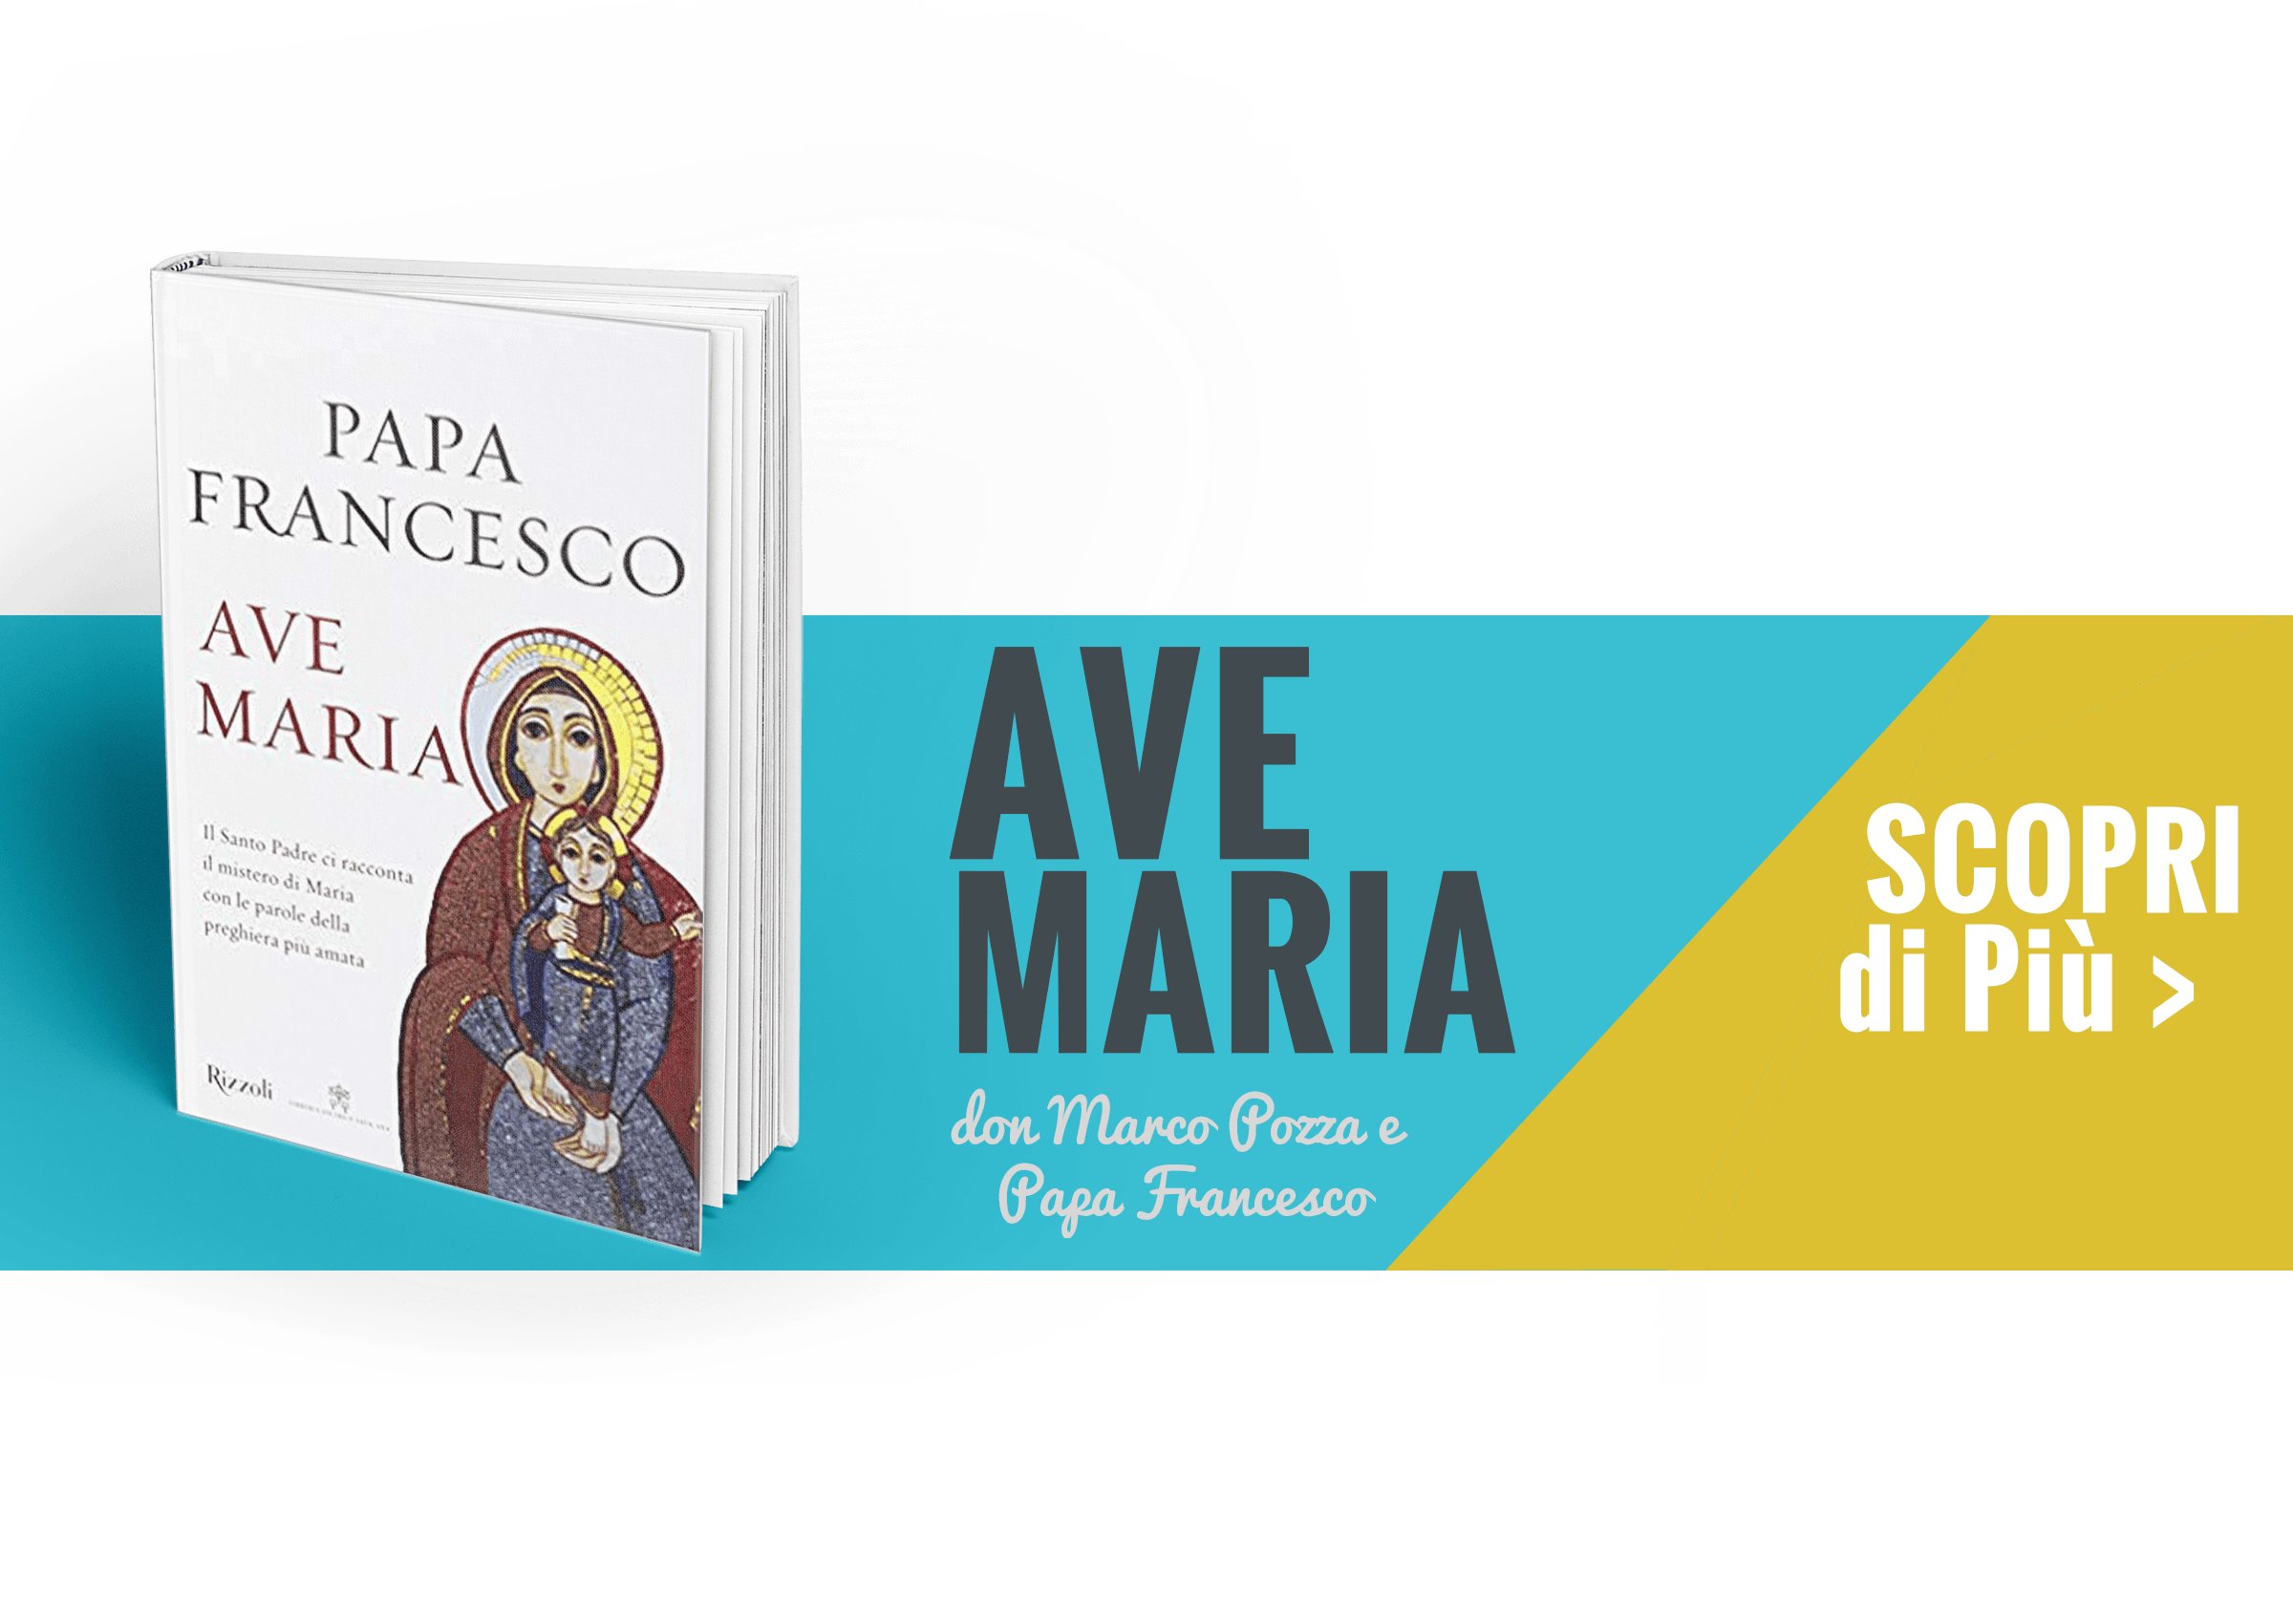 AVE MARIA DI DON MARCO POZZA E PAPA FRANCESCO